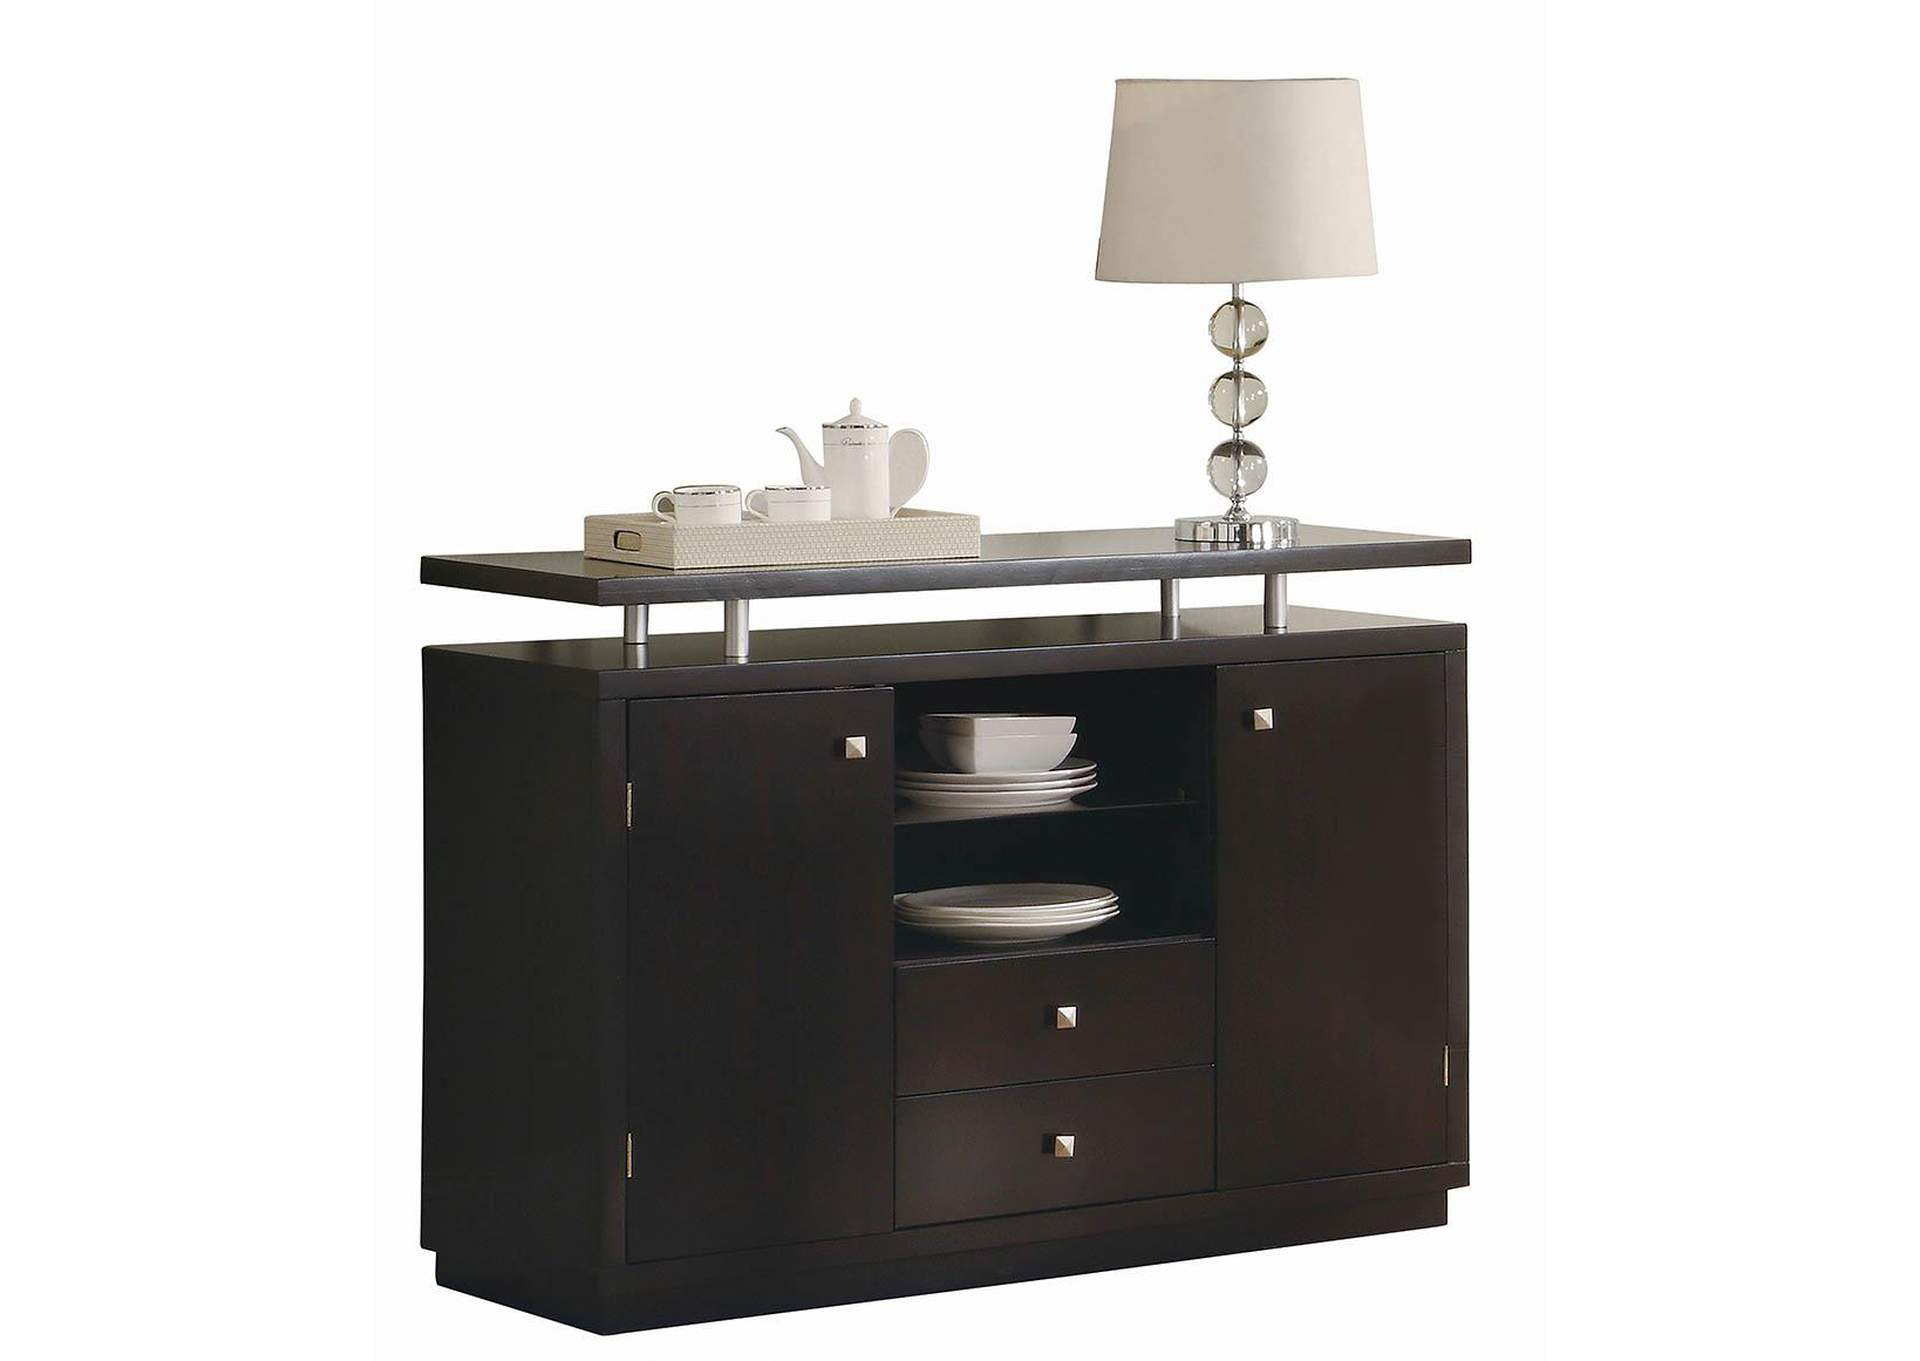 Libby Cappuccino Server,Coaster Furniture